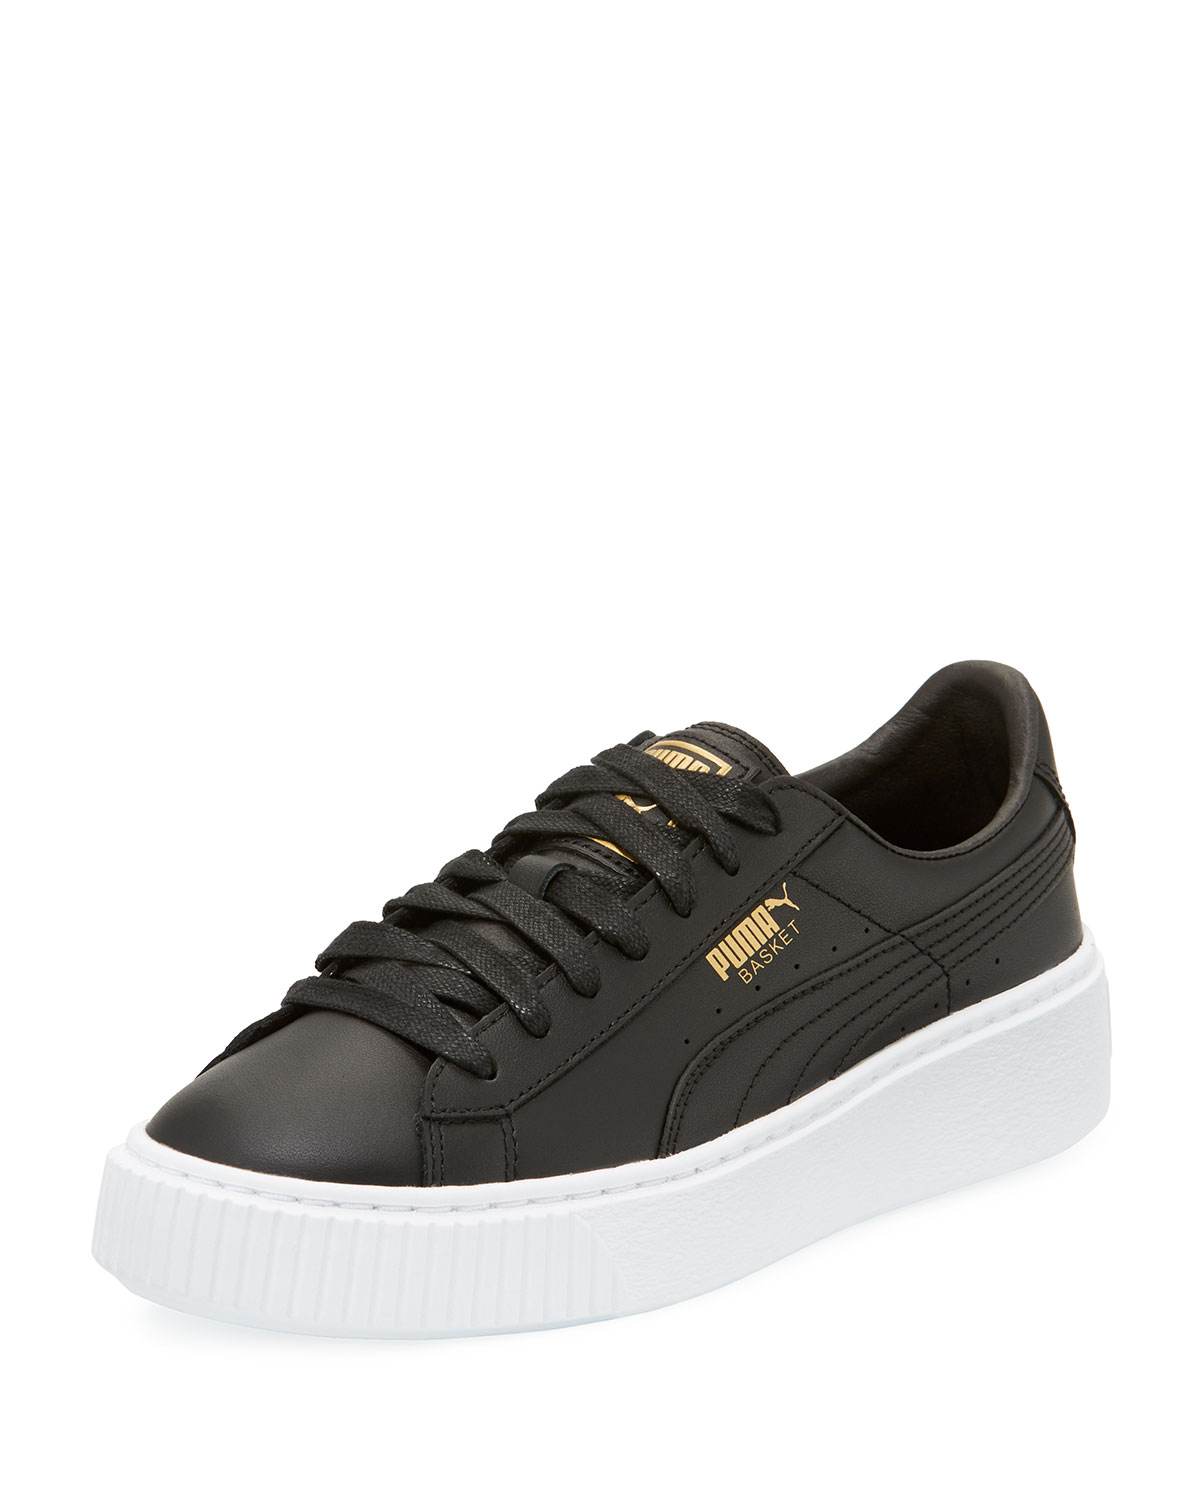 76d8eb1d45b Puma Basket Leather Platform Sneaker